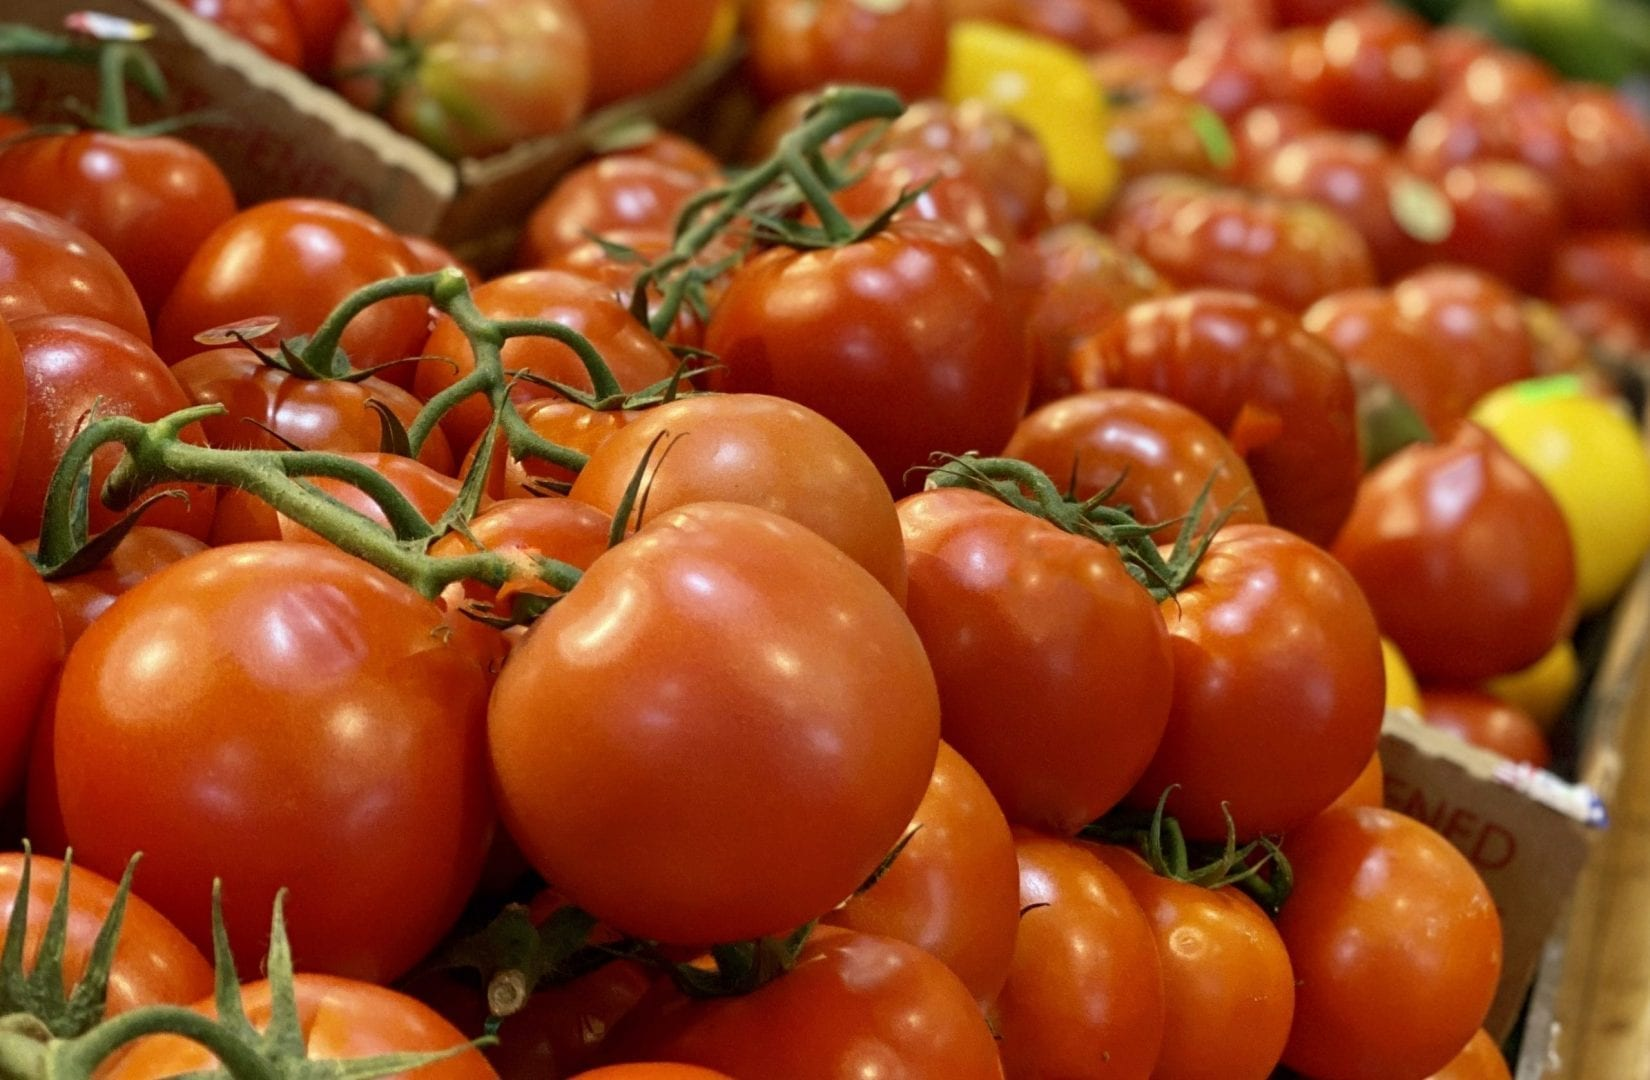 This picture shows red cluster tomatoes in our farm stand.